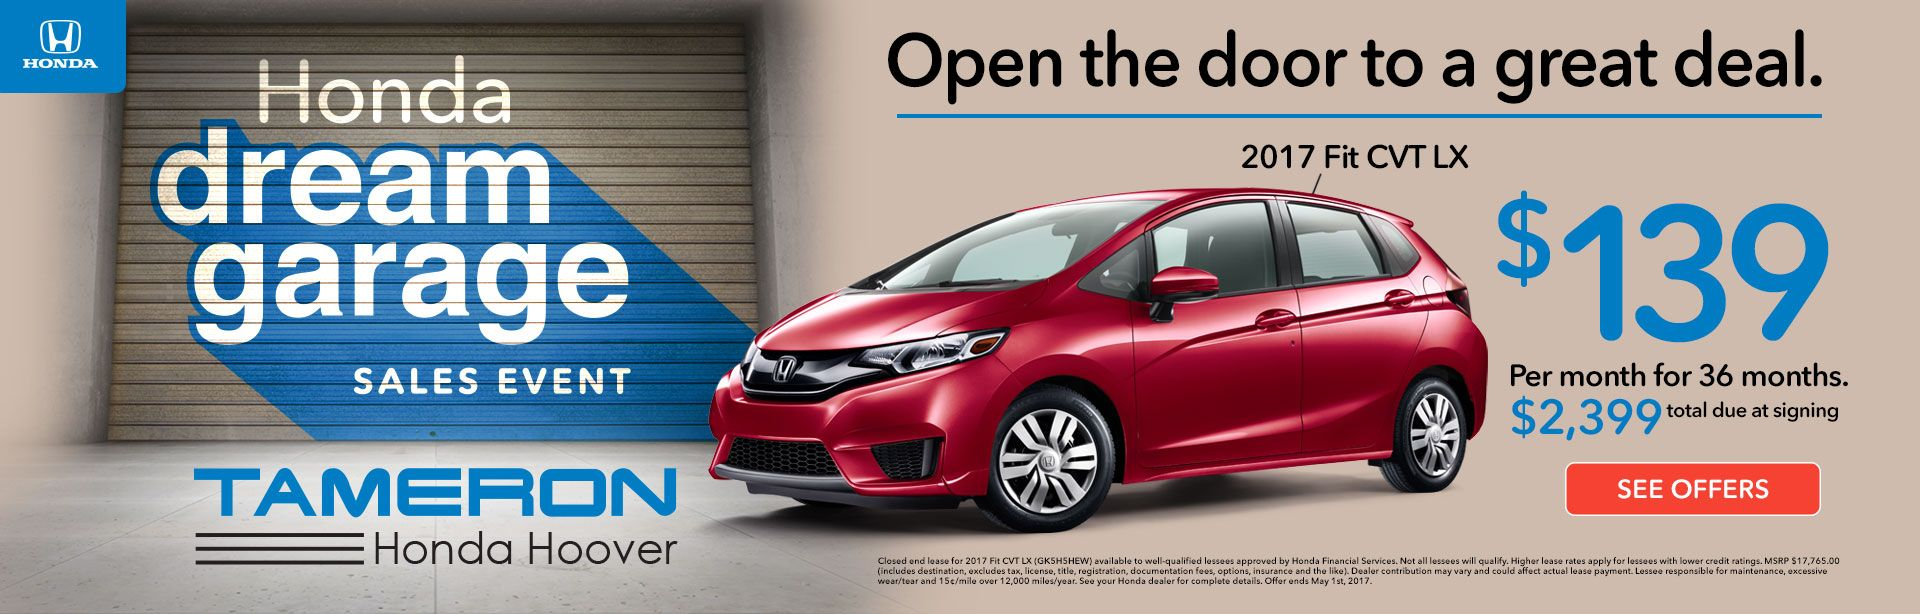 Honda Car Dealer in Birmingham | Jefferson County | Tameron Honda